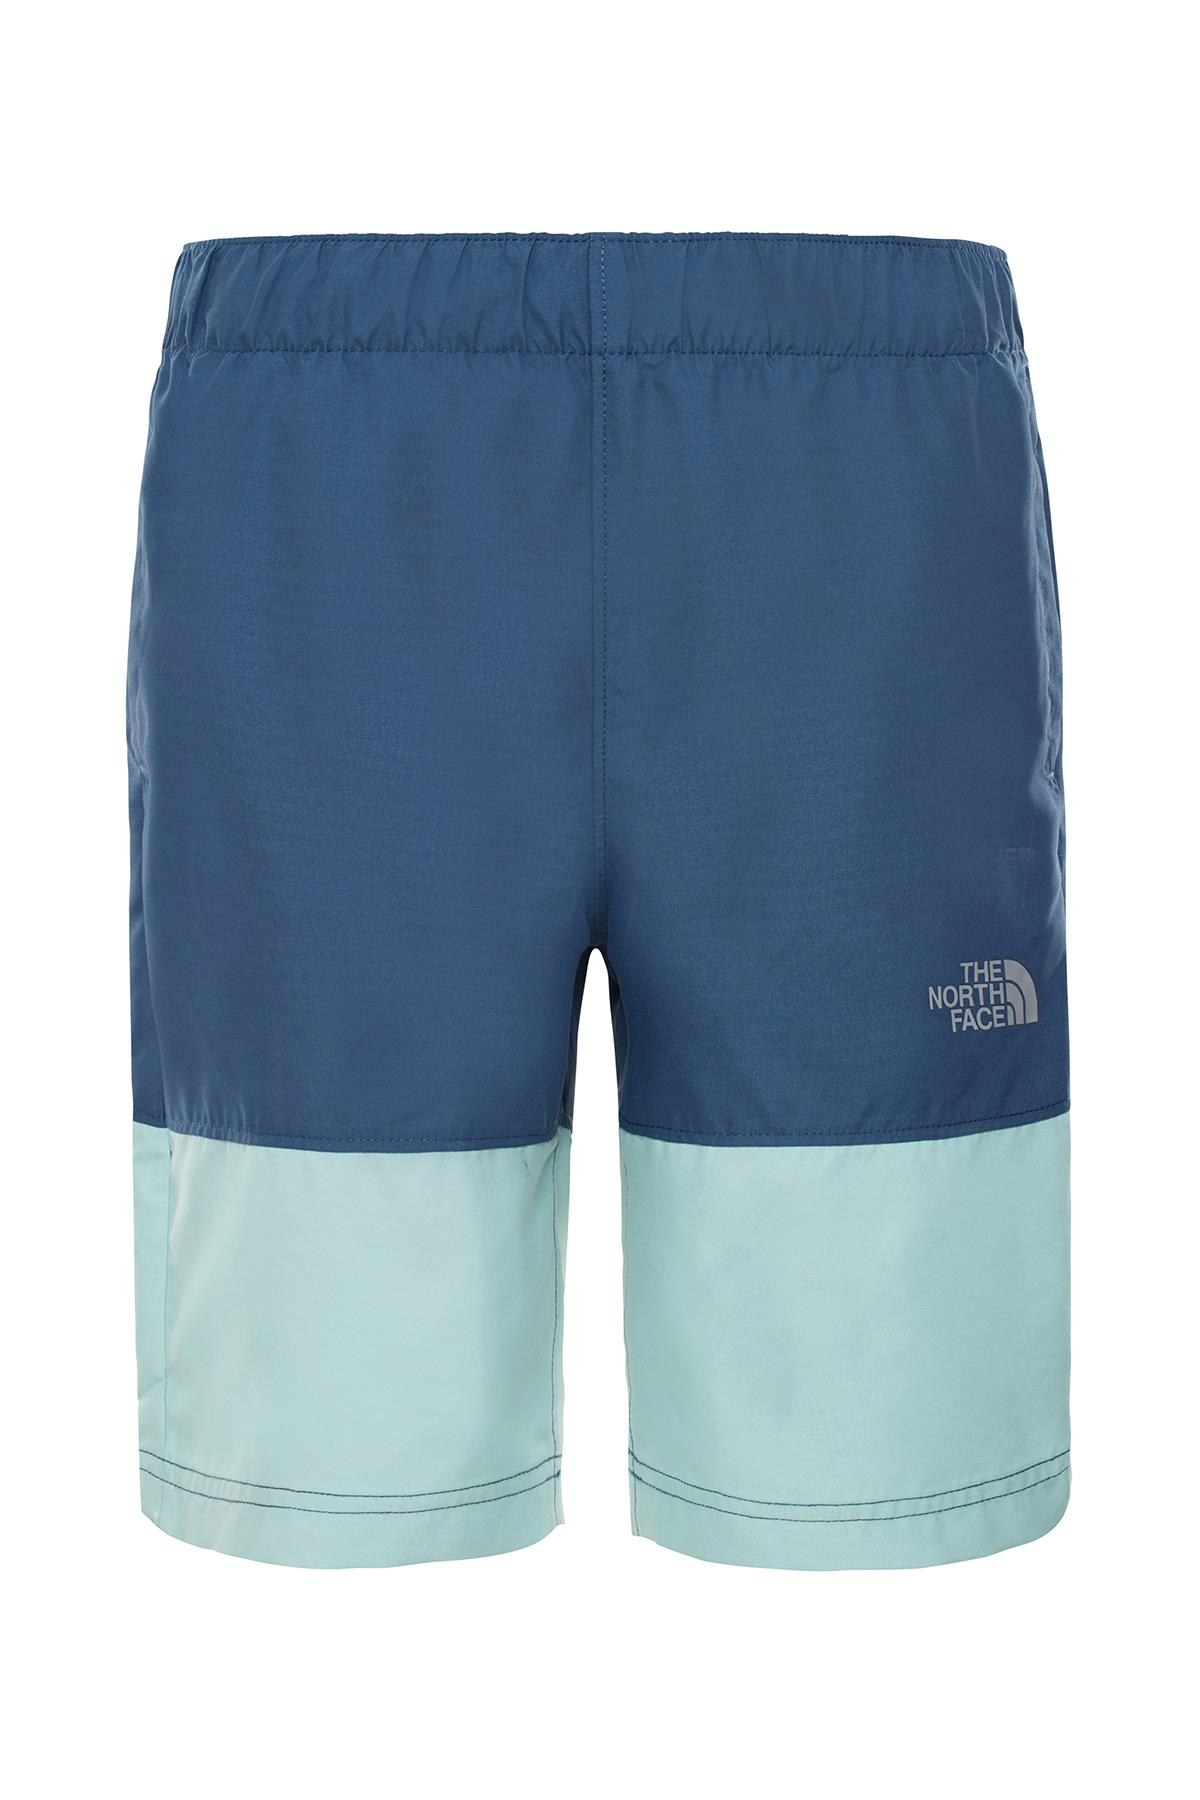 The Northface B Class V Short T93Nnh9Ga Şort